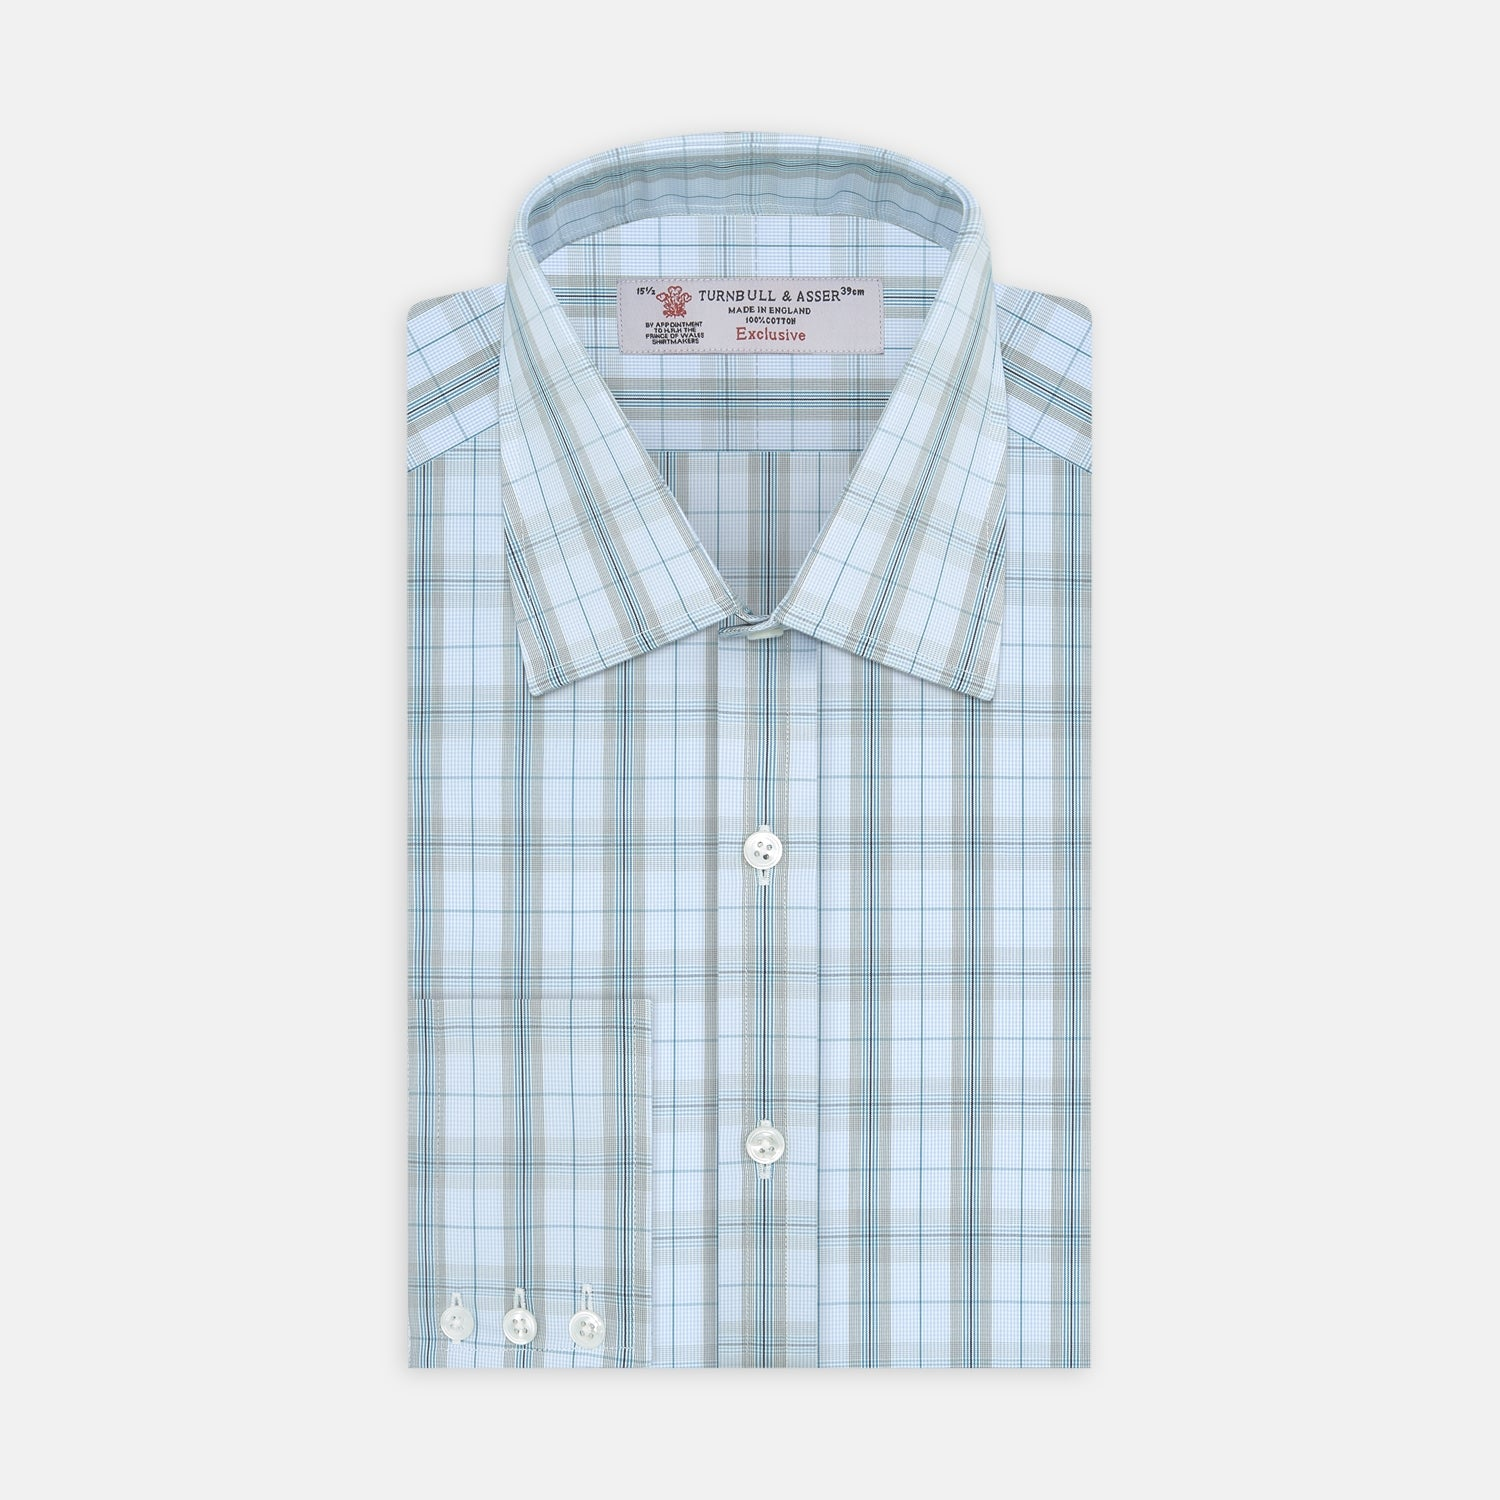 Grey, Turquoise and Sky Blue Mixed Check Shirt with T&A Collar and 3-Button Cuffs